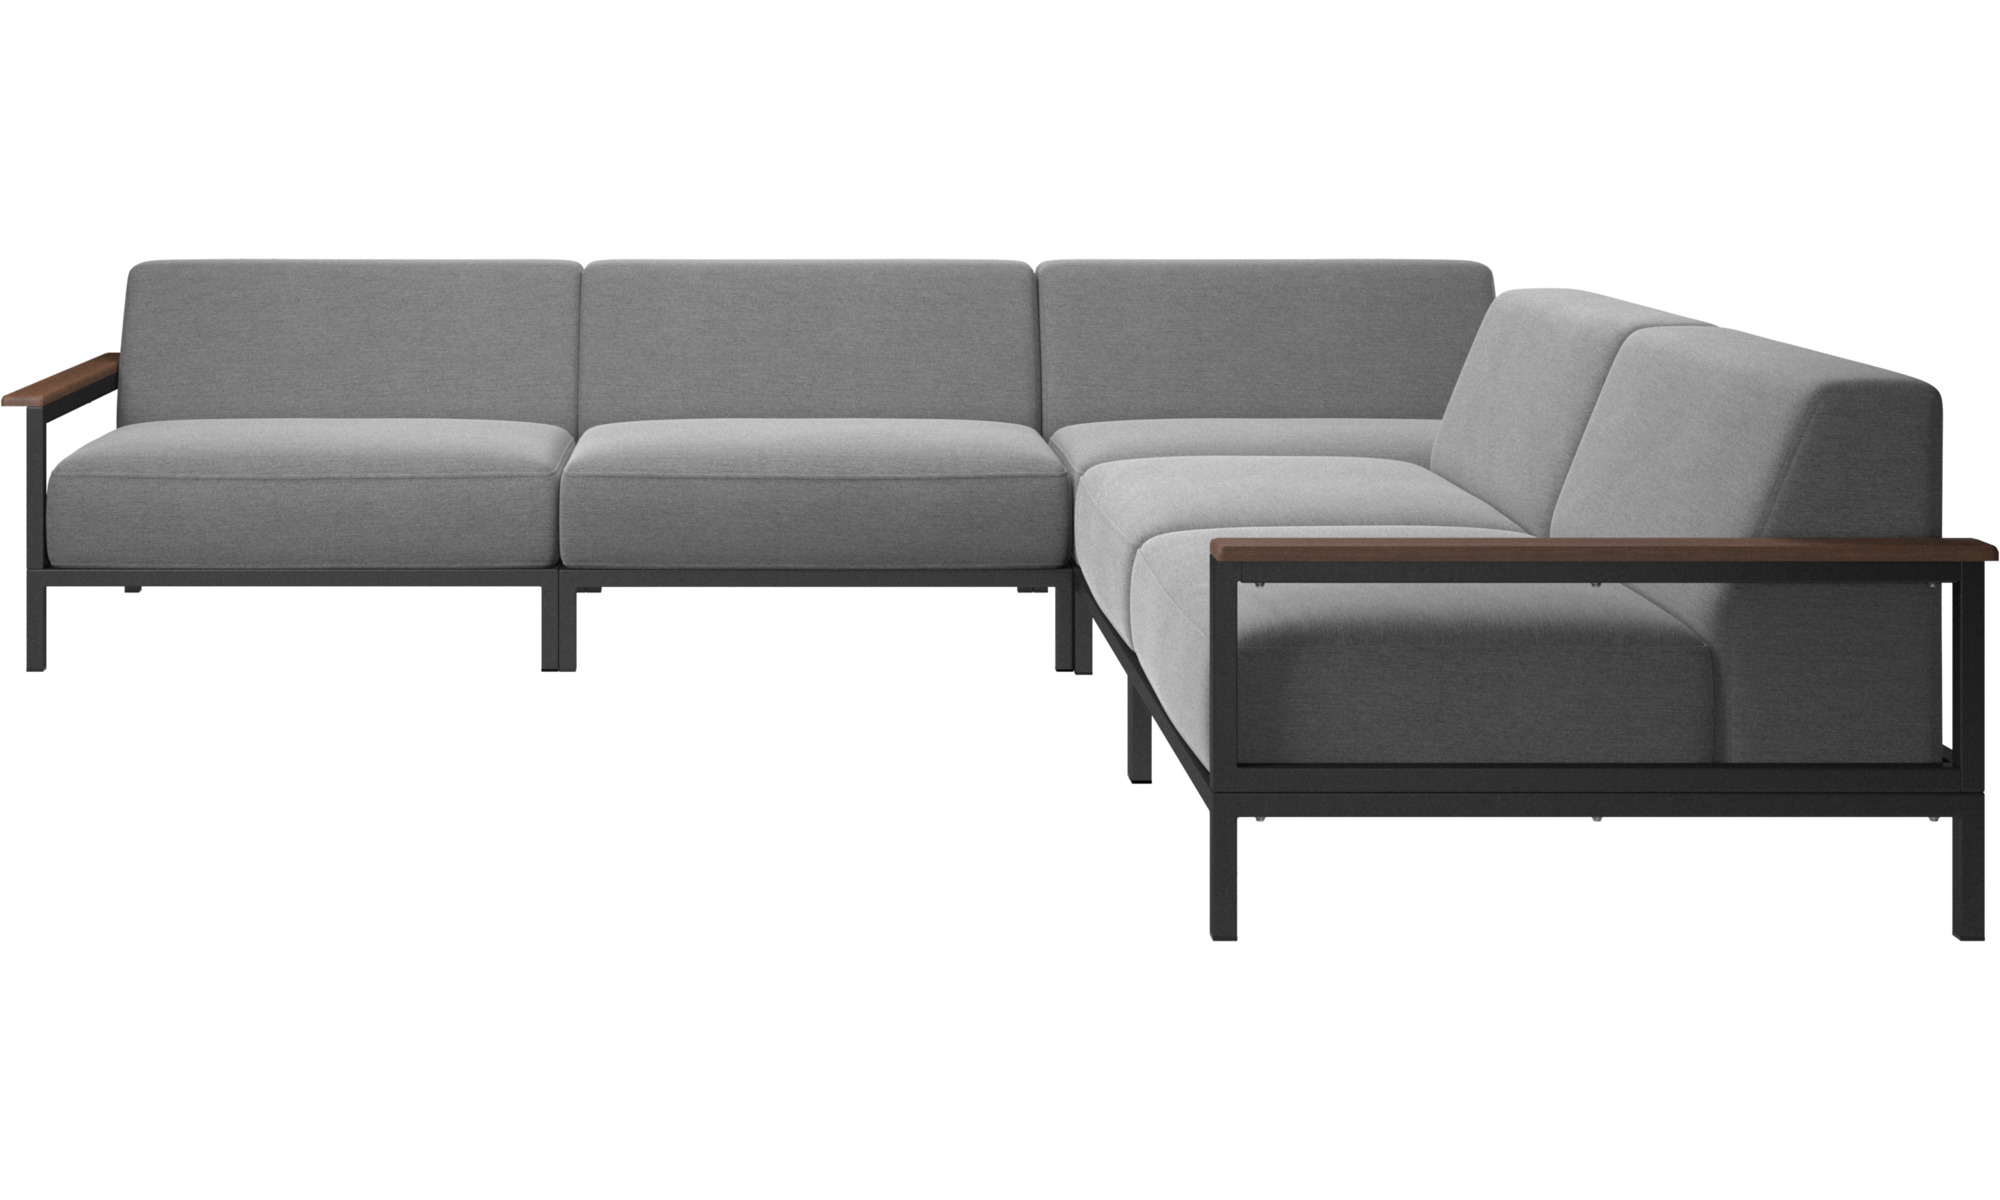 Outdoor Sofa Outdoor Sofas Rome Outdoor Sofa Boconcept